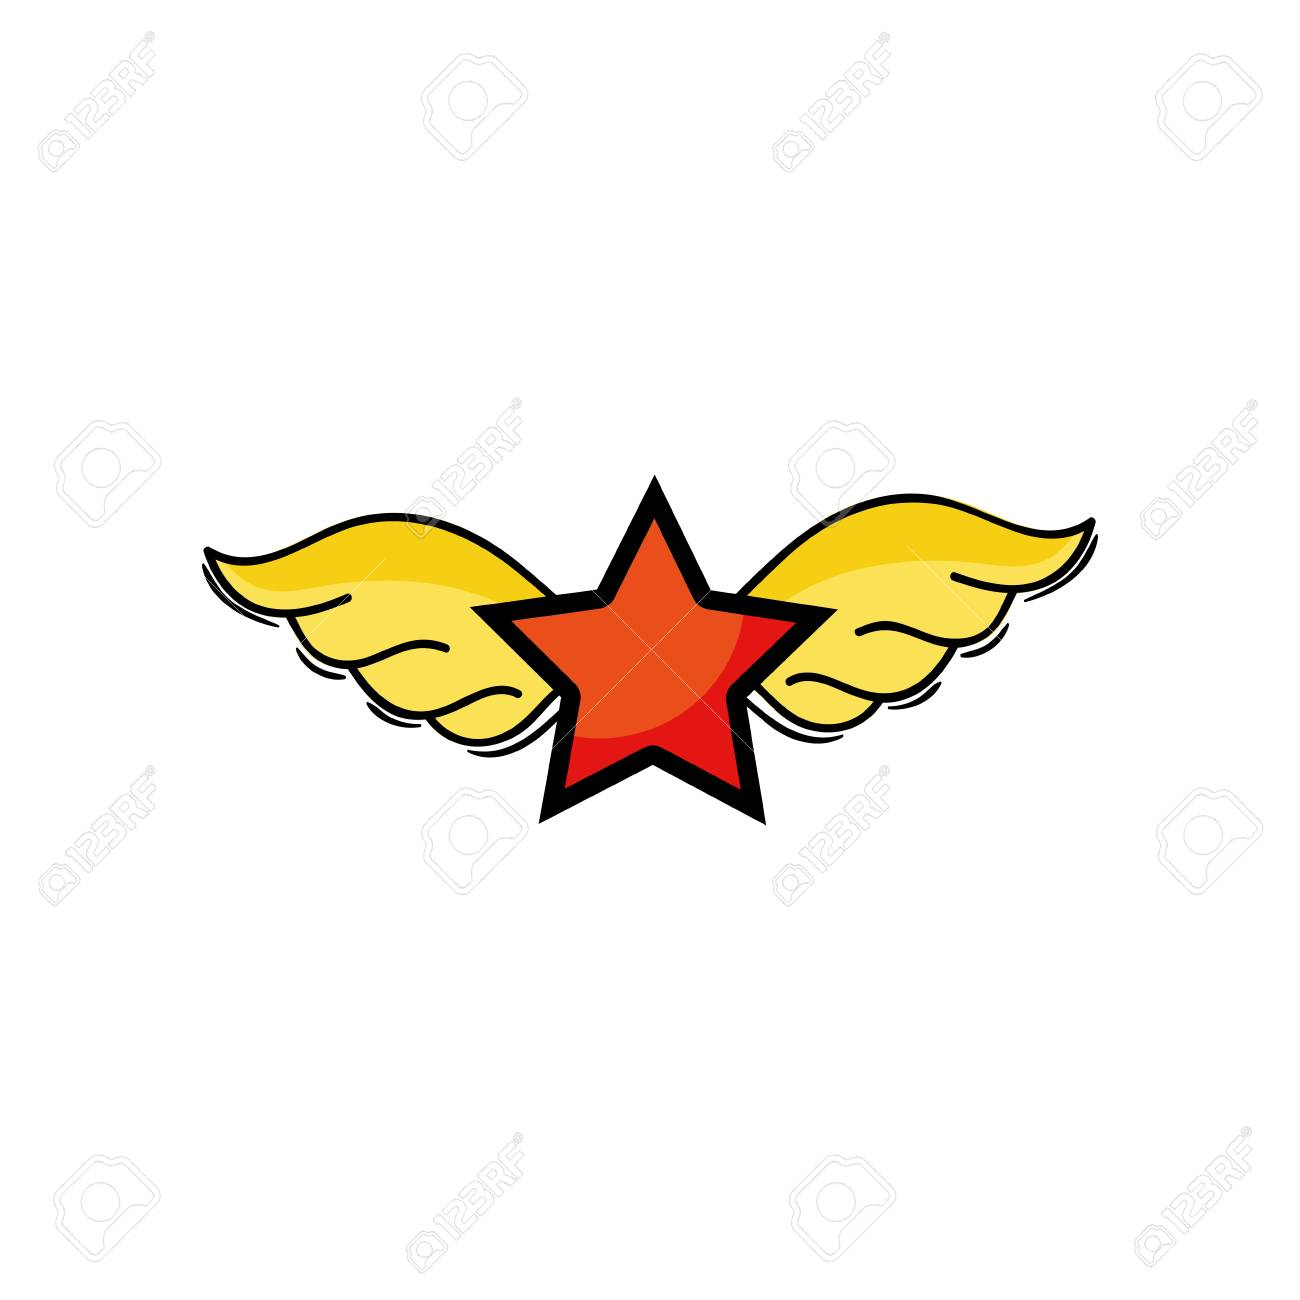 Star With Wings Rock Symbol Art Vector Illustration Royalty Free